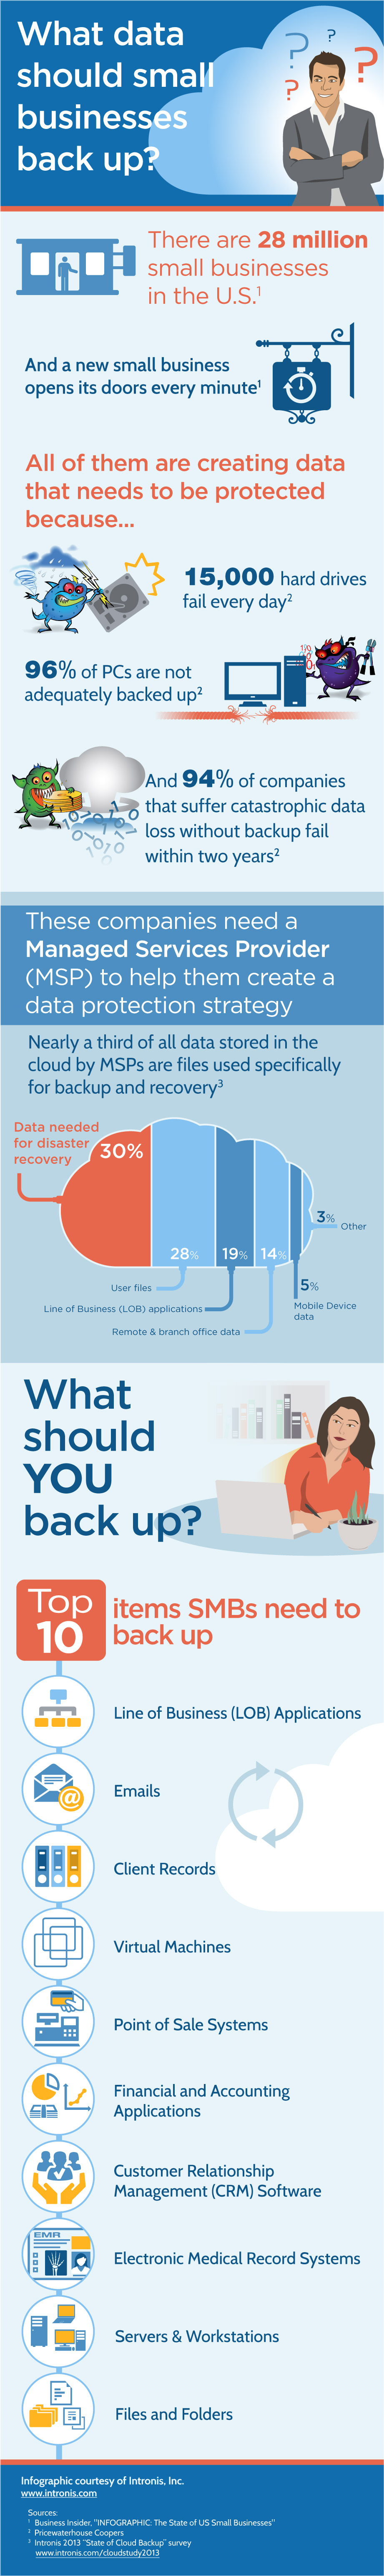 cloud computing technology infographic on data backup study by Intronis